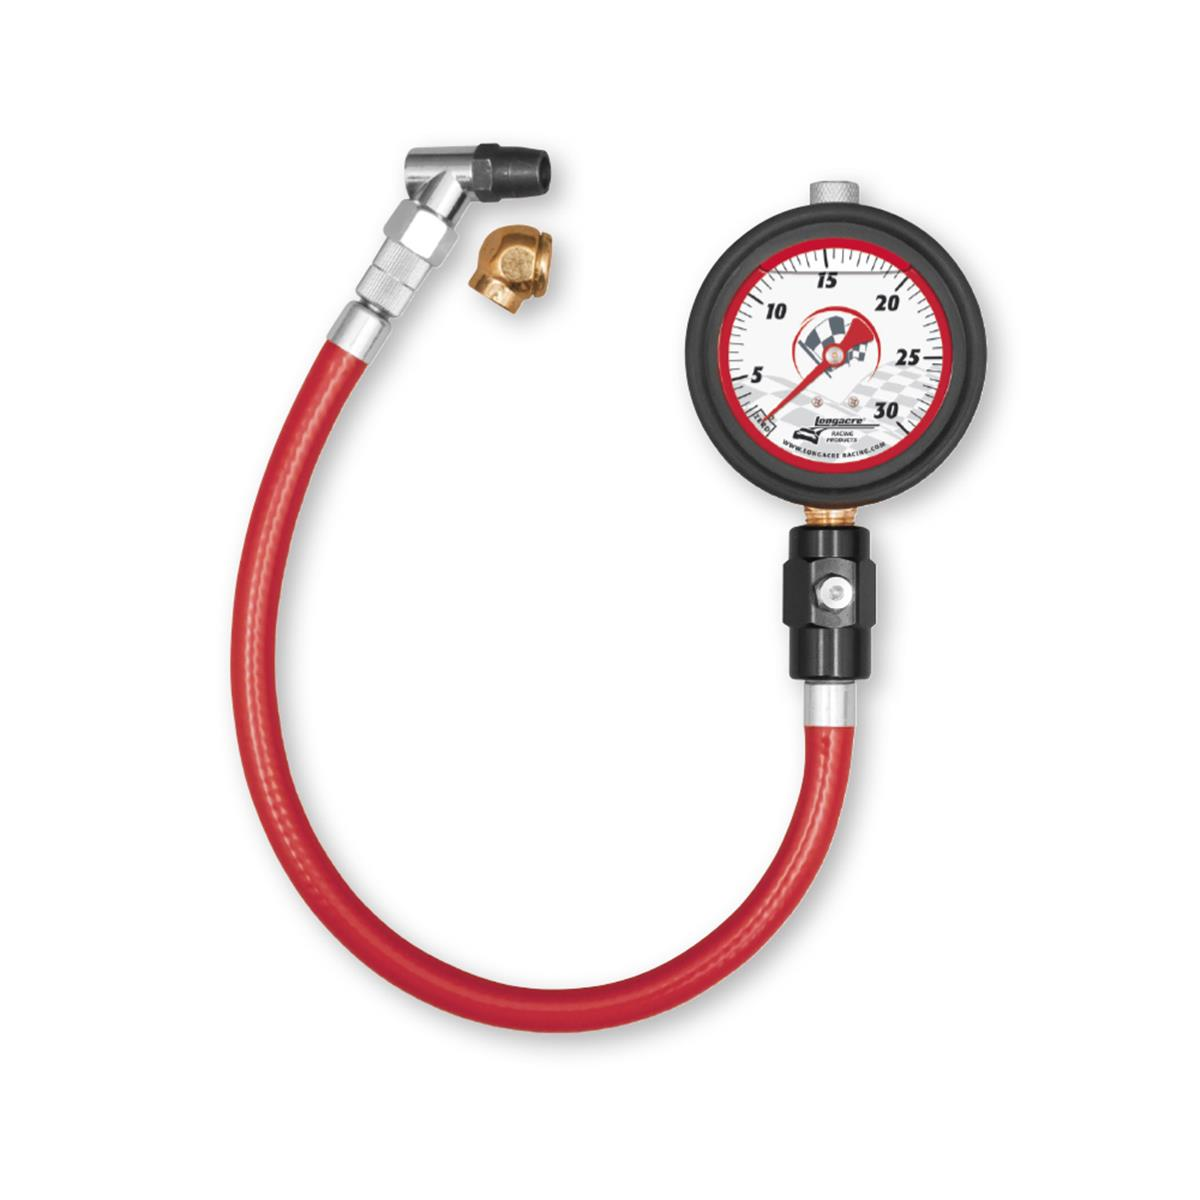 "Liquid Filled 2½"" GID Tire Gauge 0-30 by ½ lb"